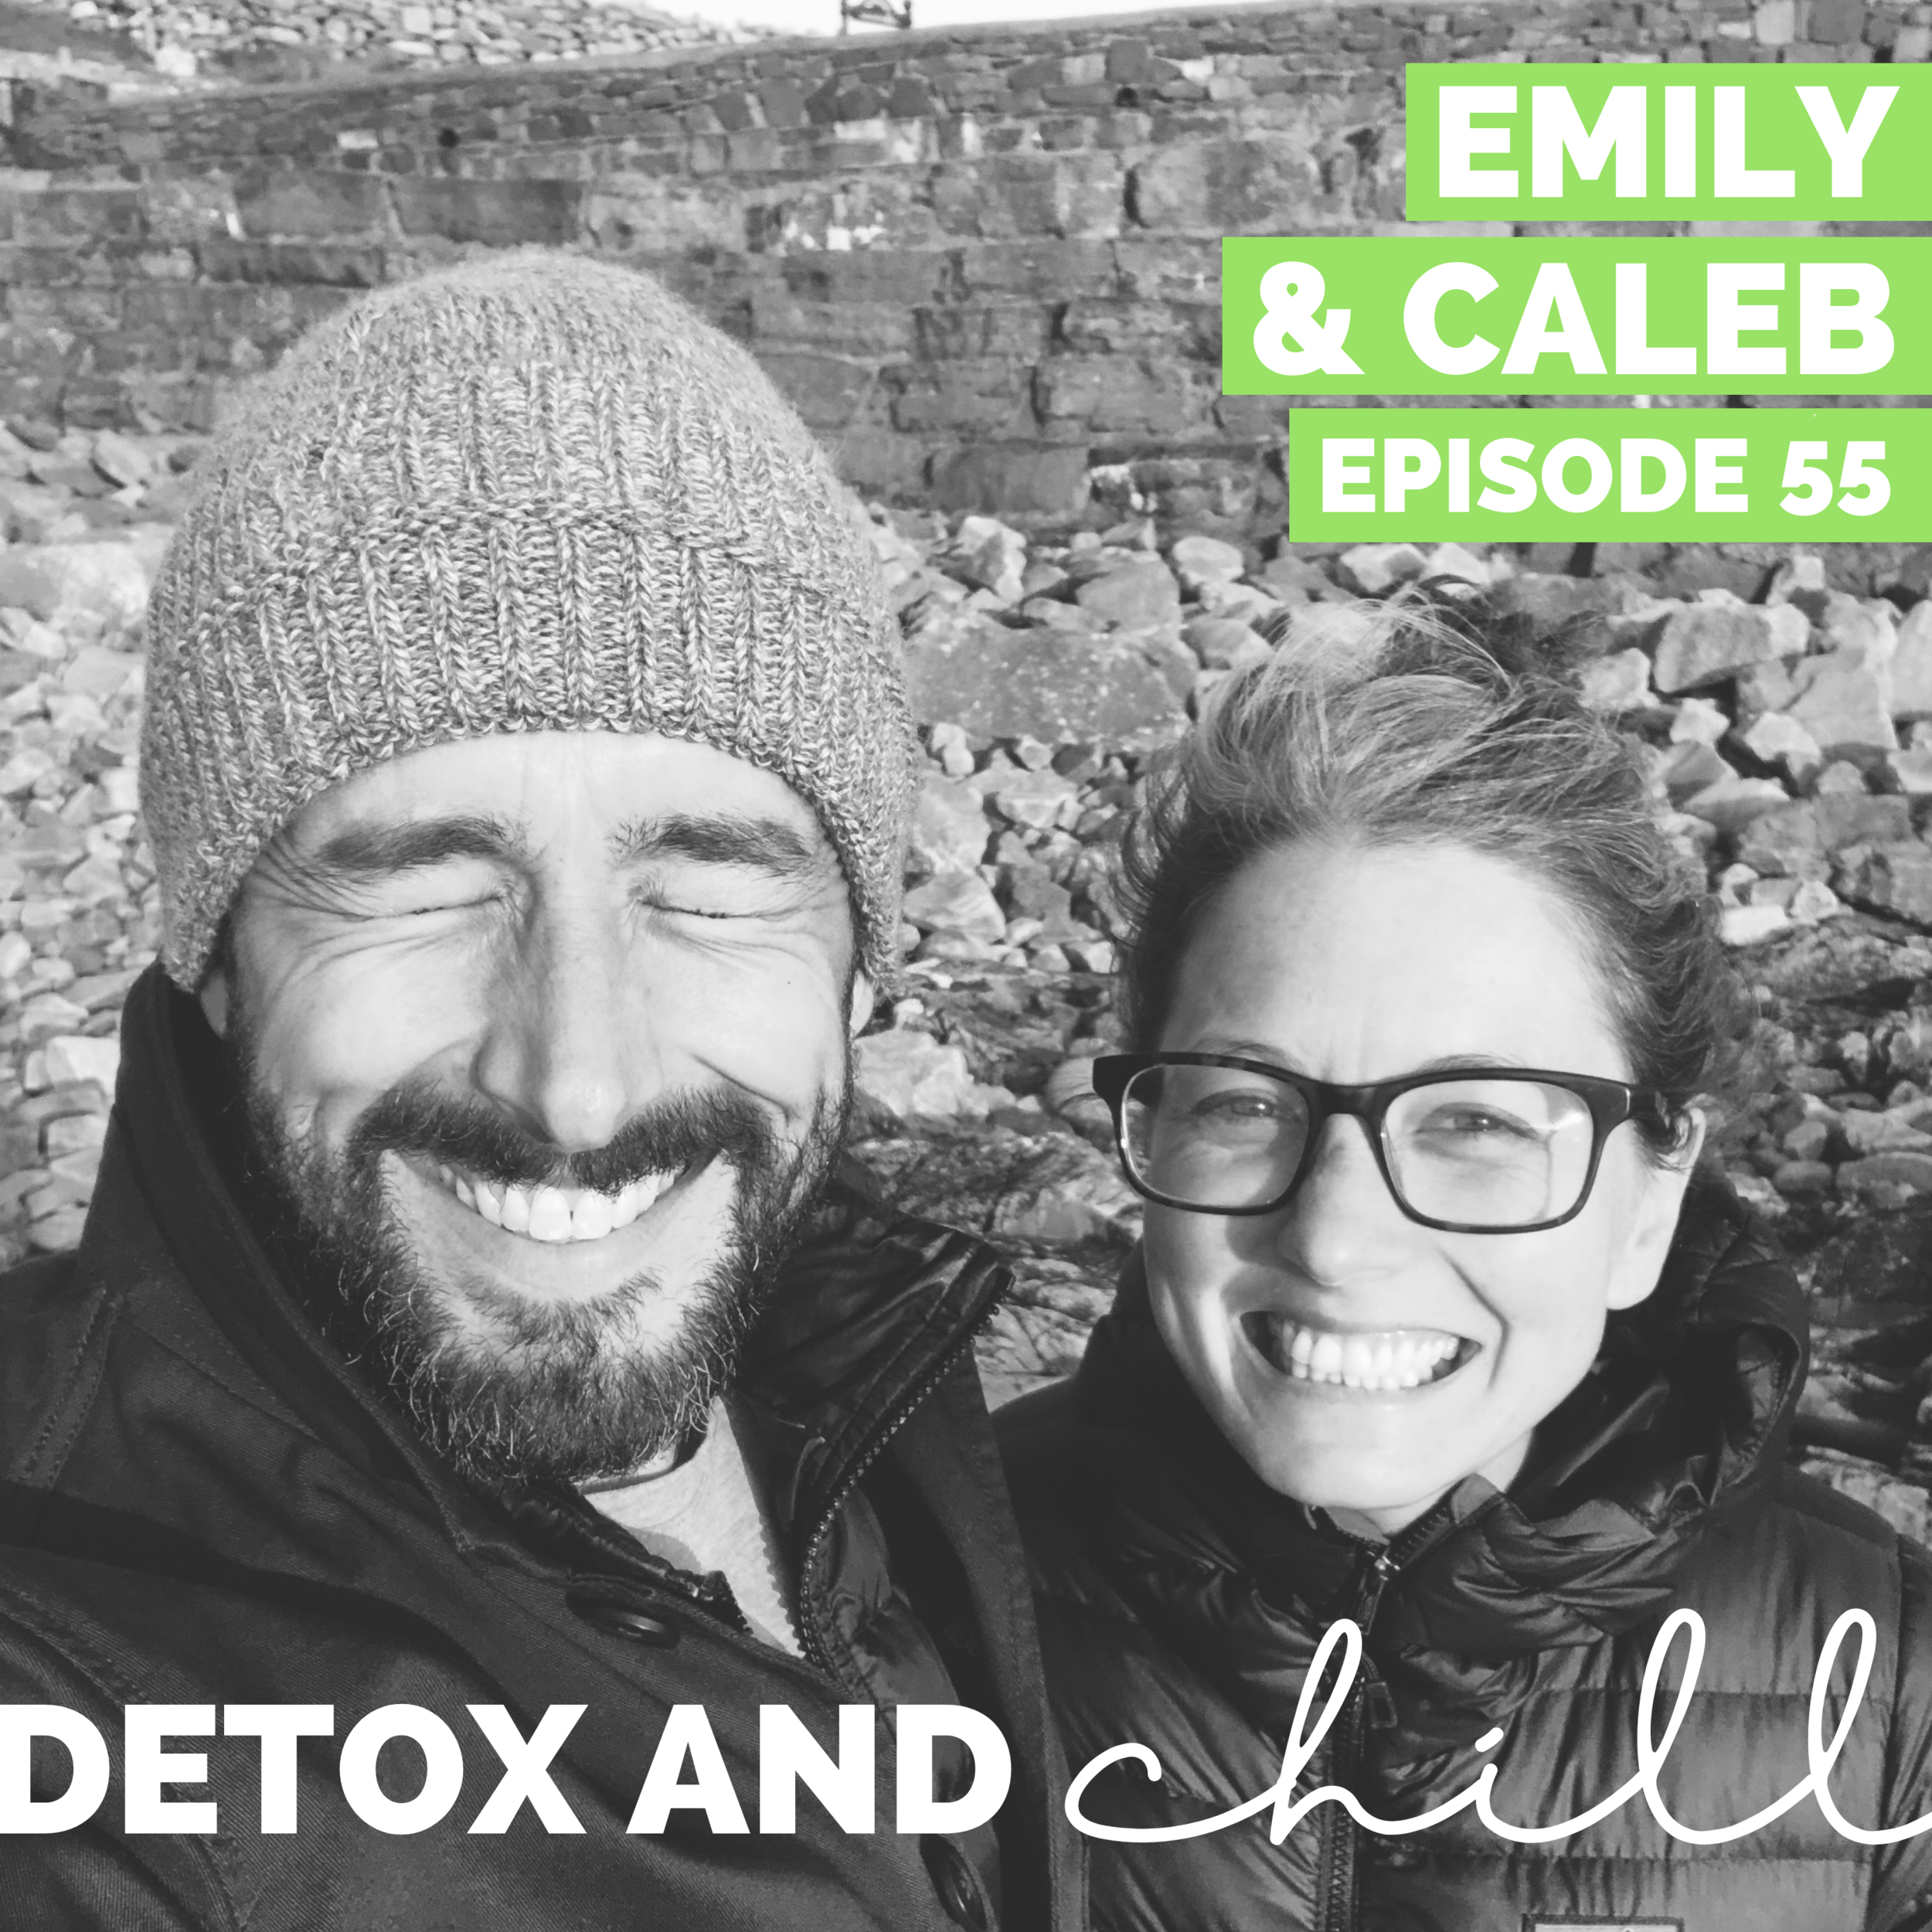 Episode #55: Emily & Caleb // Co-Owners of Cambridge Naturals // Taking Over a Family Business & Maintaining a Legacy Brand - We are back with an episode we've been so excited to record for SO long!Cambridge Naturals was founded in 1974 by Michael Kanter and Elizabeth Stagl (then 24 years old). Their mission is to provide the best choices in natural wellness products (nutritional supplements, clean body care, organic foods, and healthy lifestyle supplies) and offer an amazing customer experience to the local community. They are committed to sourcing products locally, organically, and ethically via fair trade and direct trade channels, and to donating a portion of our profits to social and environmental organizations that impact our community. As part of their vision for a more just, equitable and sustainable world, they strive to partner with businesses owned by women and under-served individuals. They offer a curated selection of wonderful products (we are obsessed with so many of the brands that they carry)!Chatting with Emily and Caleb about taking the reigns with Cambridge Naturals and managing day-in and day-out operations was absolutely enlightening. These two have so much passion behind what they are doing and are so energetic and engaging. We talk about- How they met and decided to move back to Boston to take on roles at Cambridge Naturals-What it was like taking the reigns in the stores-How they balance work life / family life when working with their significant others-Their vision for the future of CN's and what's coming up soon for themWe know you guys will absolutely LOVE this episode!We are so proud and excited about this episode and are so excited to hear what you think - let's start normalizing these conversations together. We'd love to continue this conversation in our Facebook group and on Instagram. Our Facebook group is a safe space for anyone who joins, so don't forget to check us out there. Just search *SUPER EXLUSIVE* Detox & Chill Podcast Group. As always, don't forget to follow along with us on Instagram (@detoxandchillpodcast) and join our Facebook group. We love you!Xoxo,Meg and BeckFind Cambridge Naturals HERE and shop their Cambridge and Brighton locations locally.